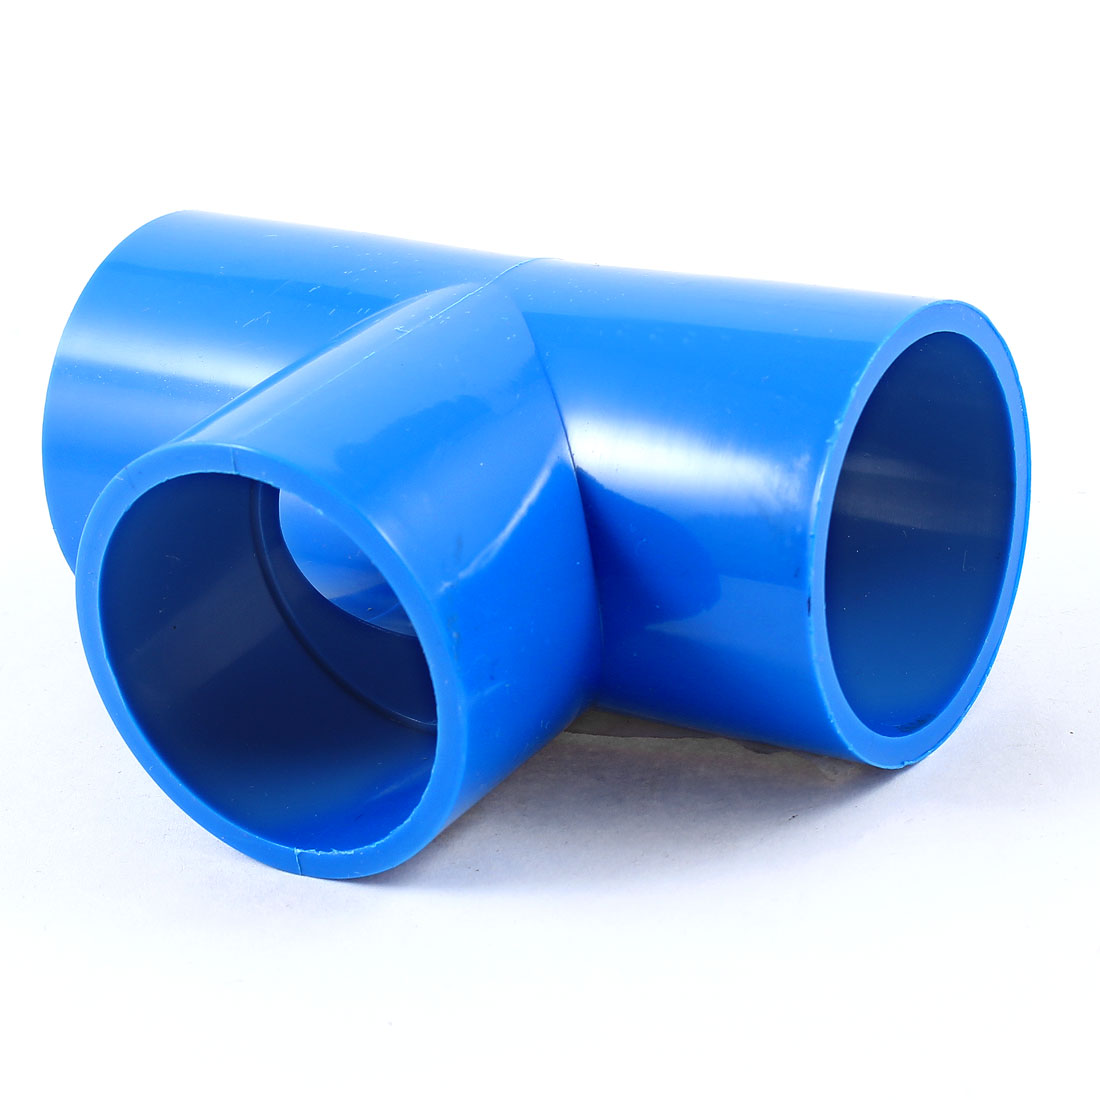 40mm-Inner-Diameter-T-Type-PVC-U-Pipe-Connector-Adapter-Blue